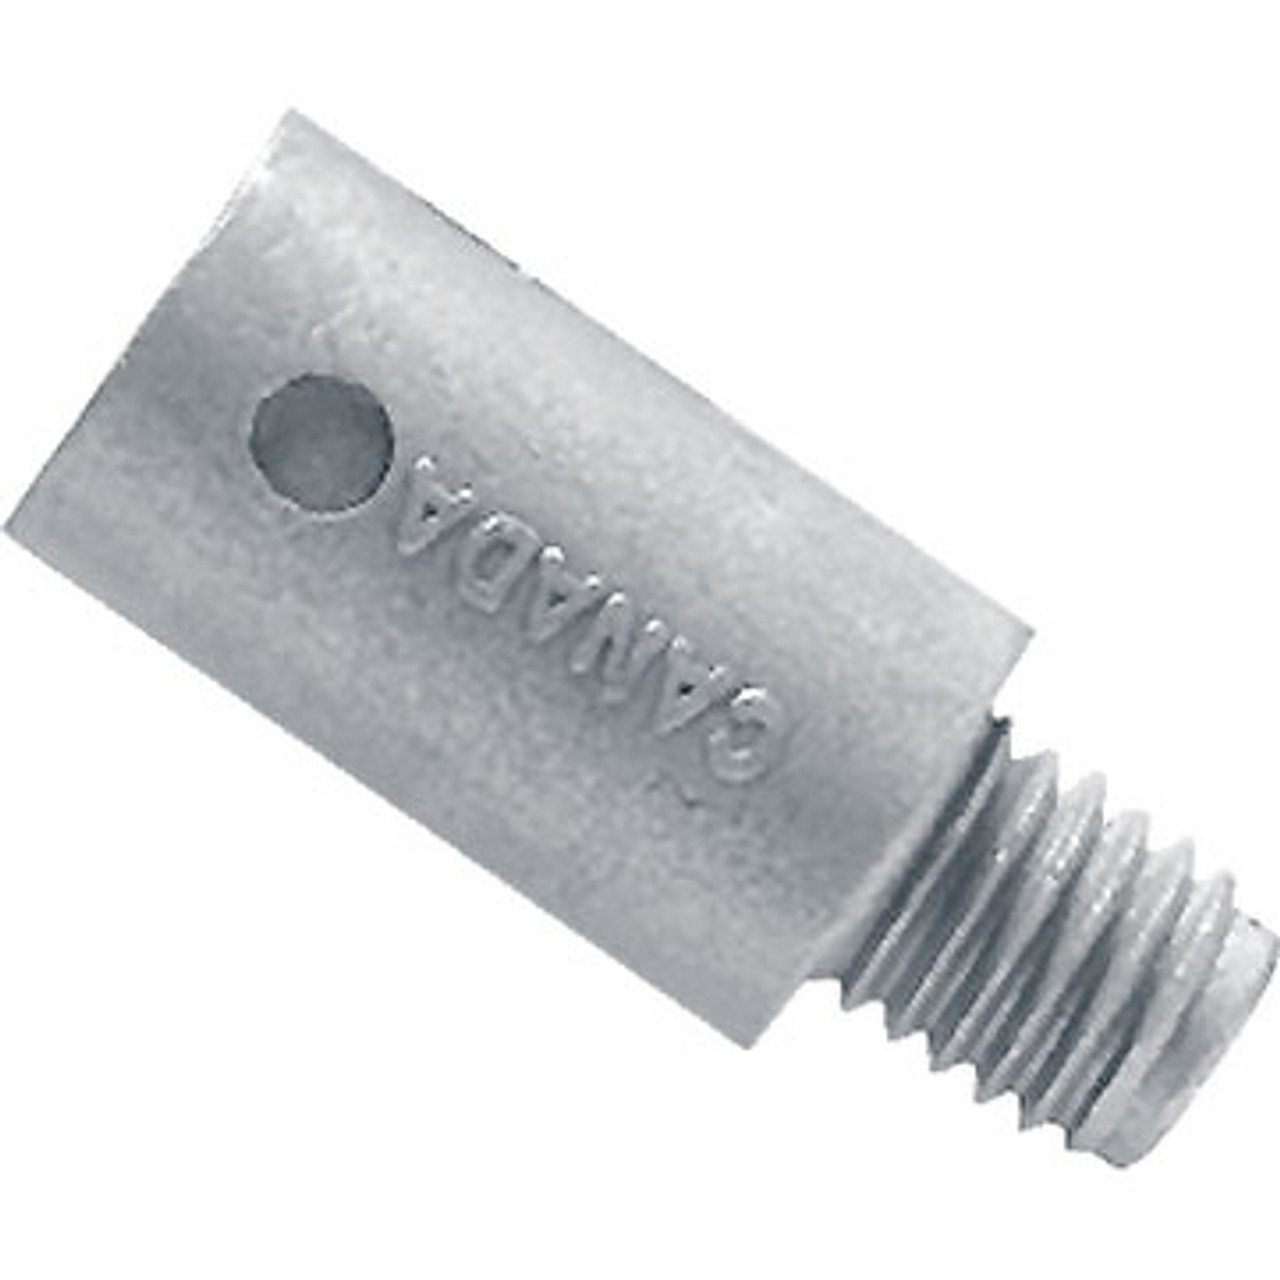 NEW MARTYR ANODES VOLVO RING ZINC ANODE MTR CM875821Z